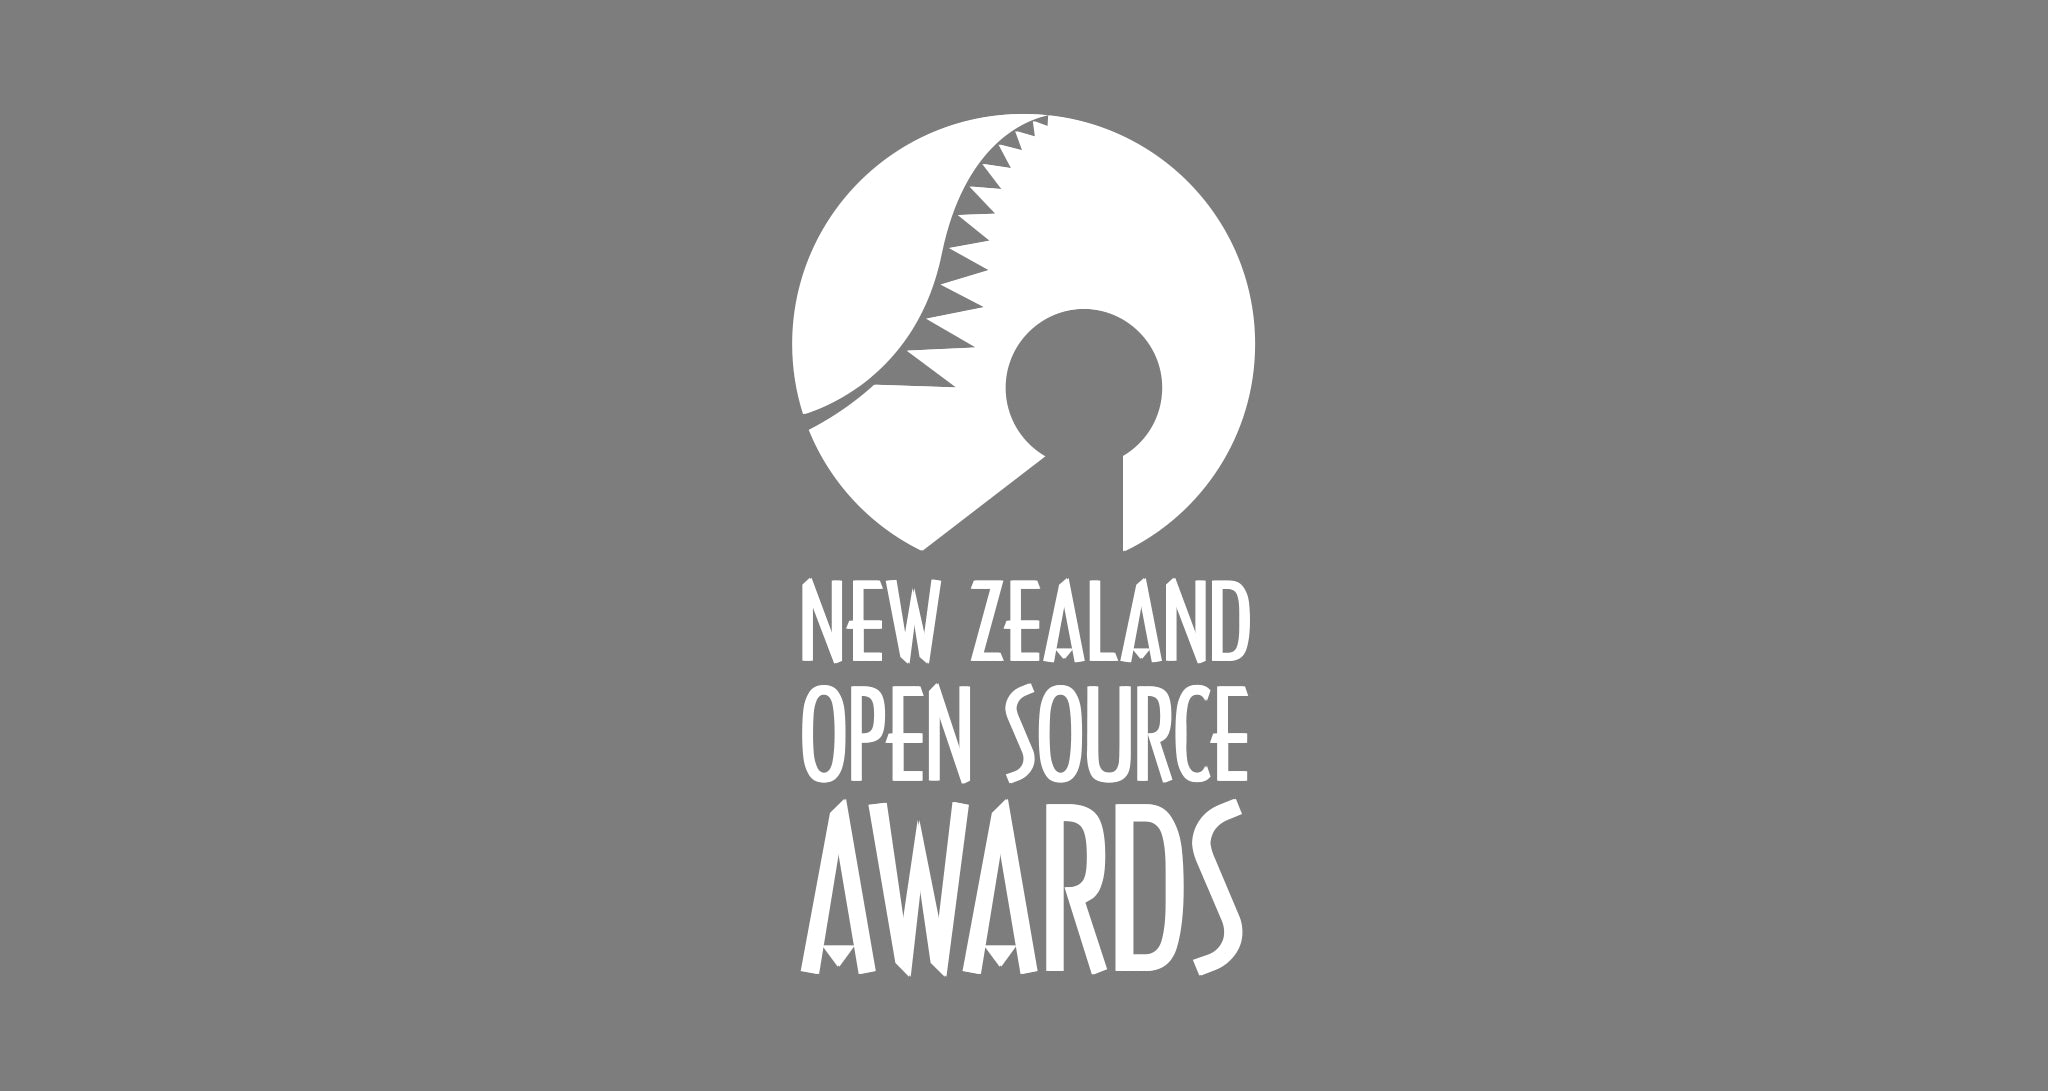 Vote for ClearFoundation in the New Zealand Open Source Awards